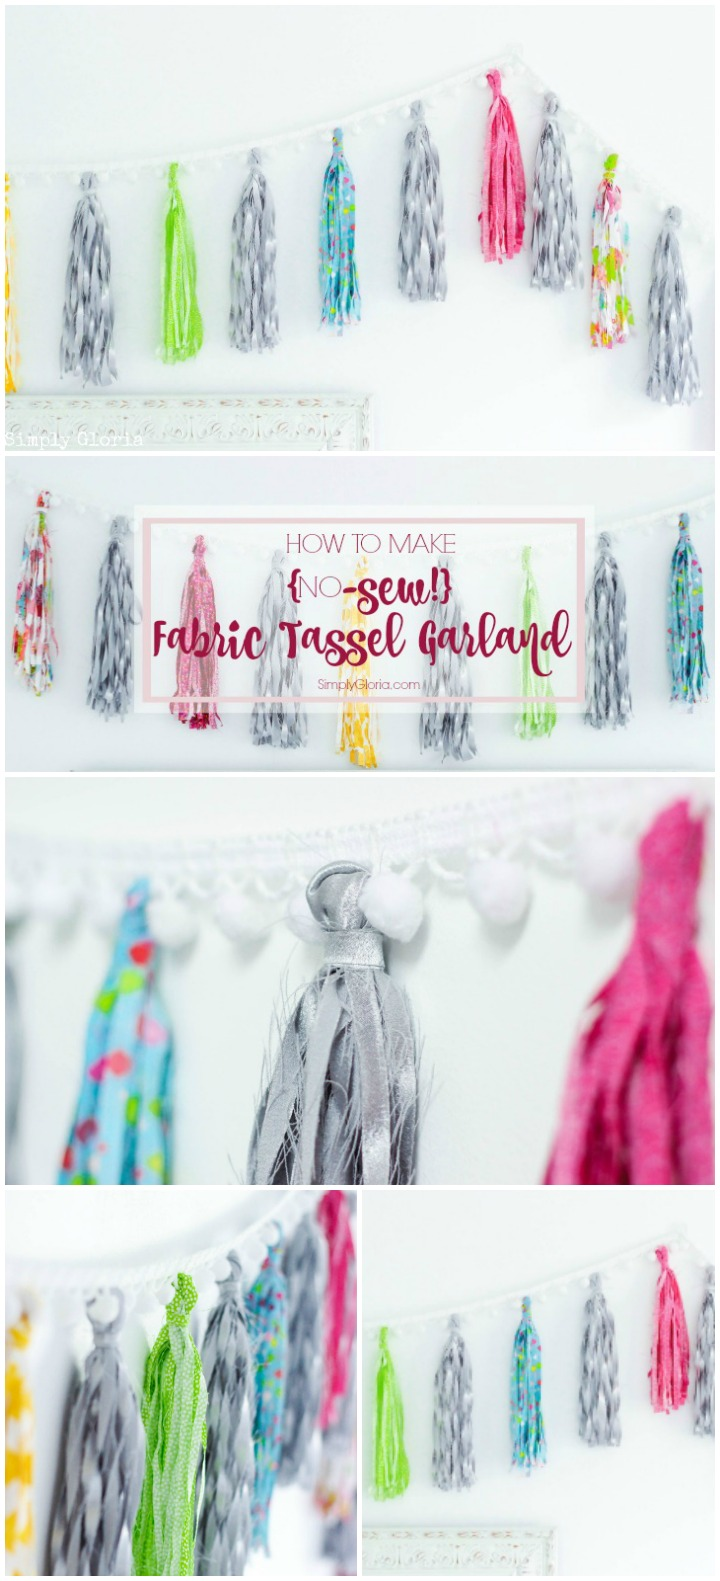 Step by step tutorial on how to create your very own no-sew fabric tassel garland!  #DIY